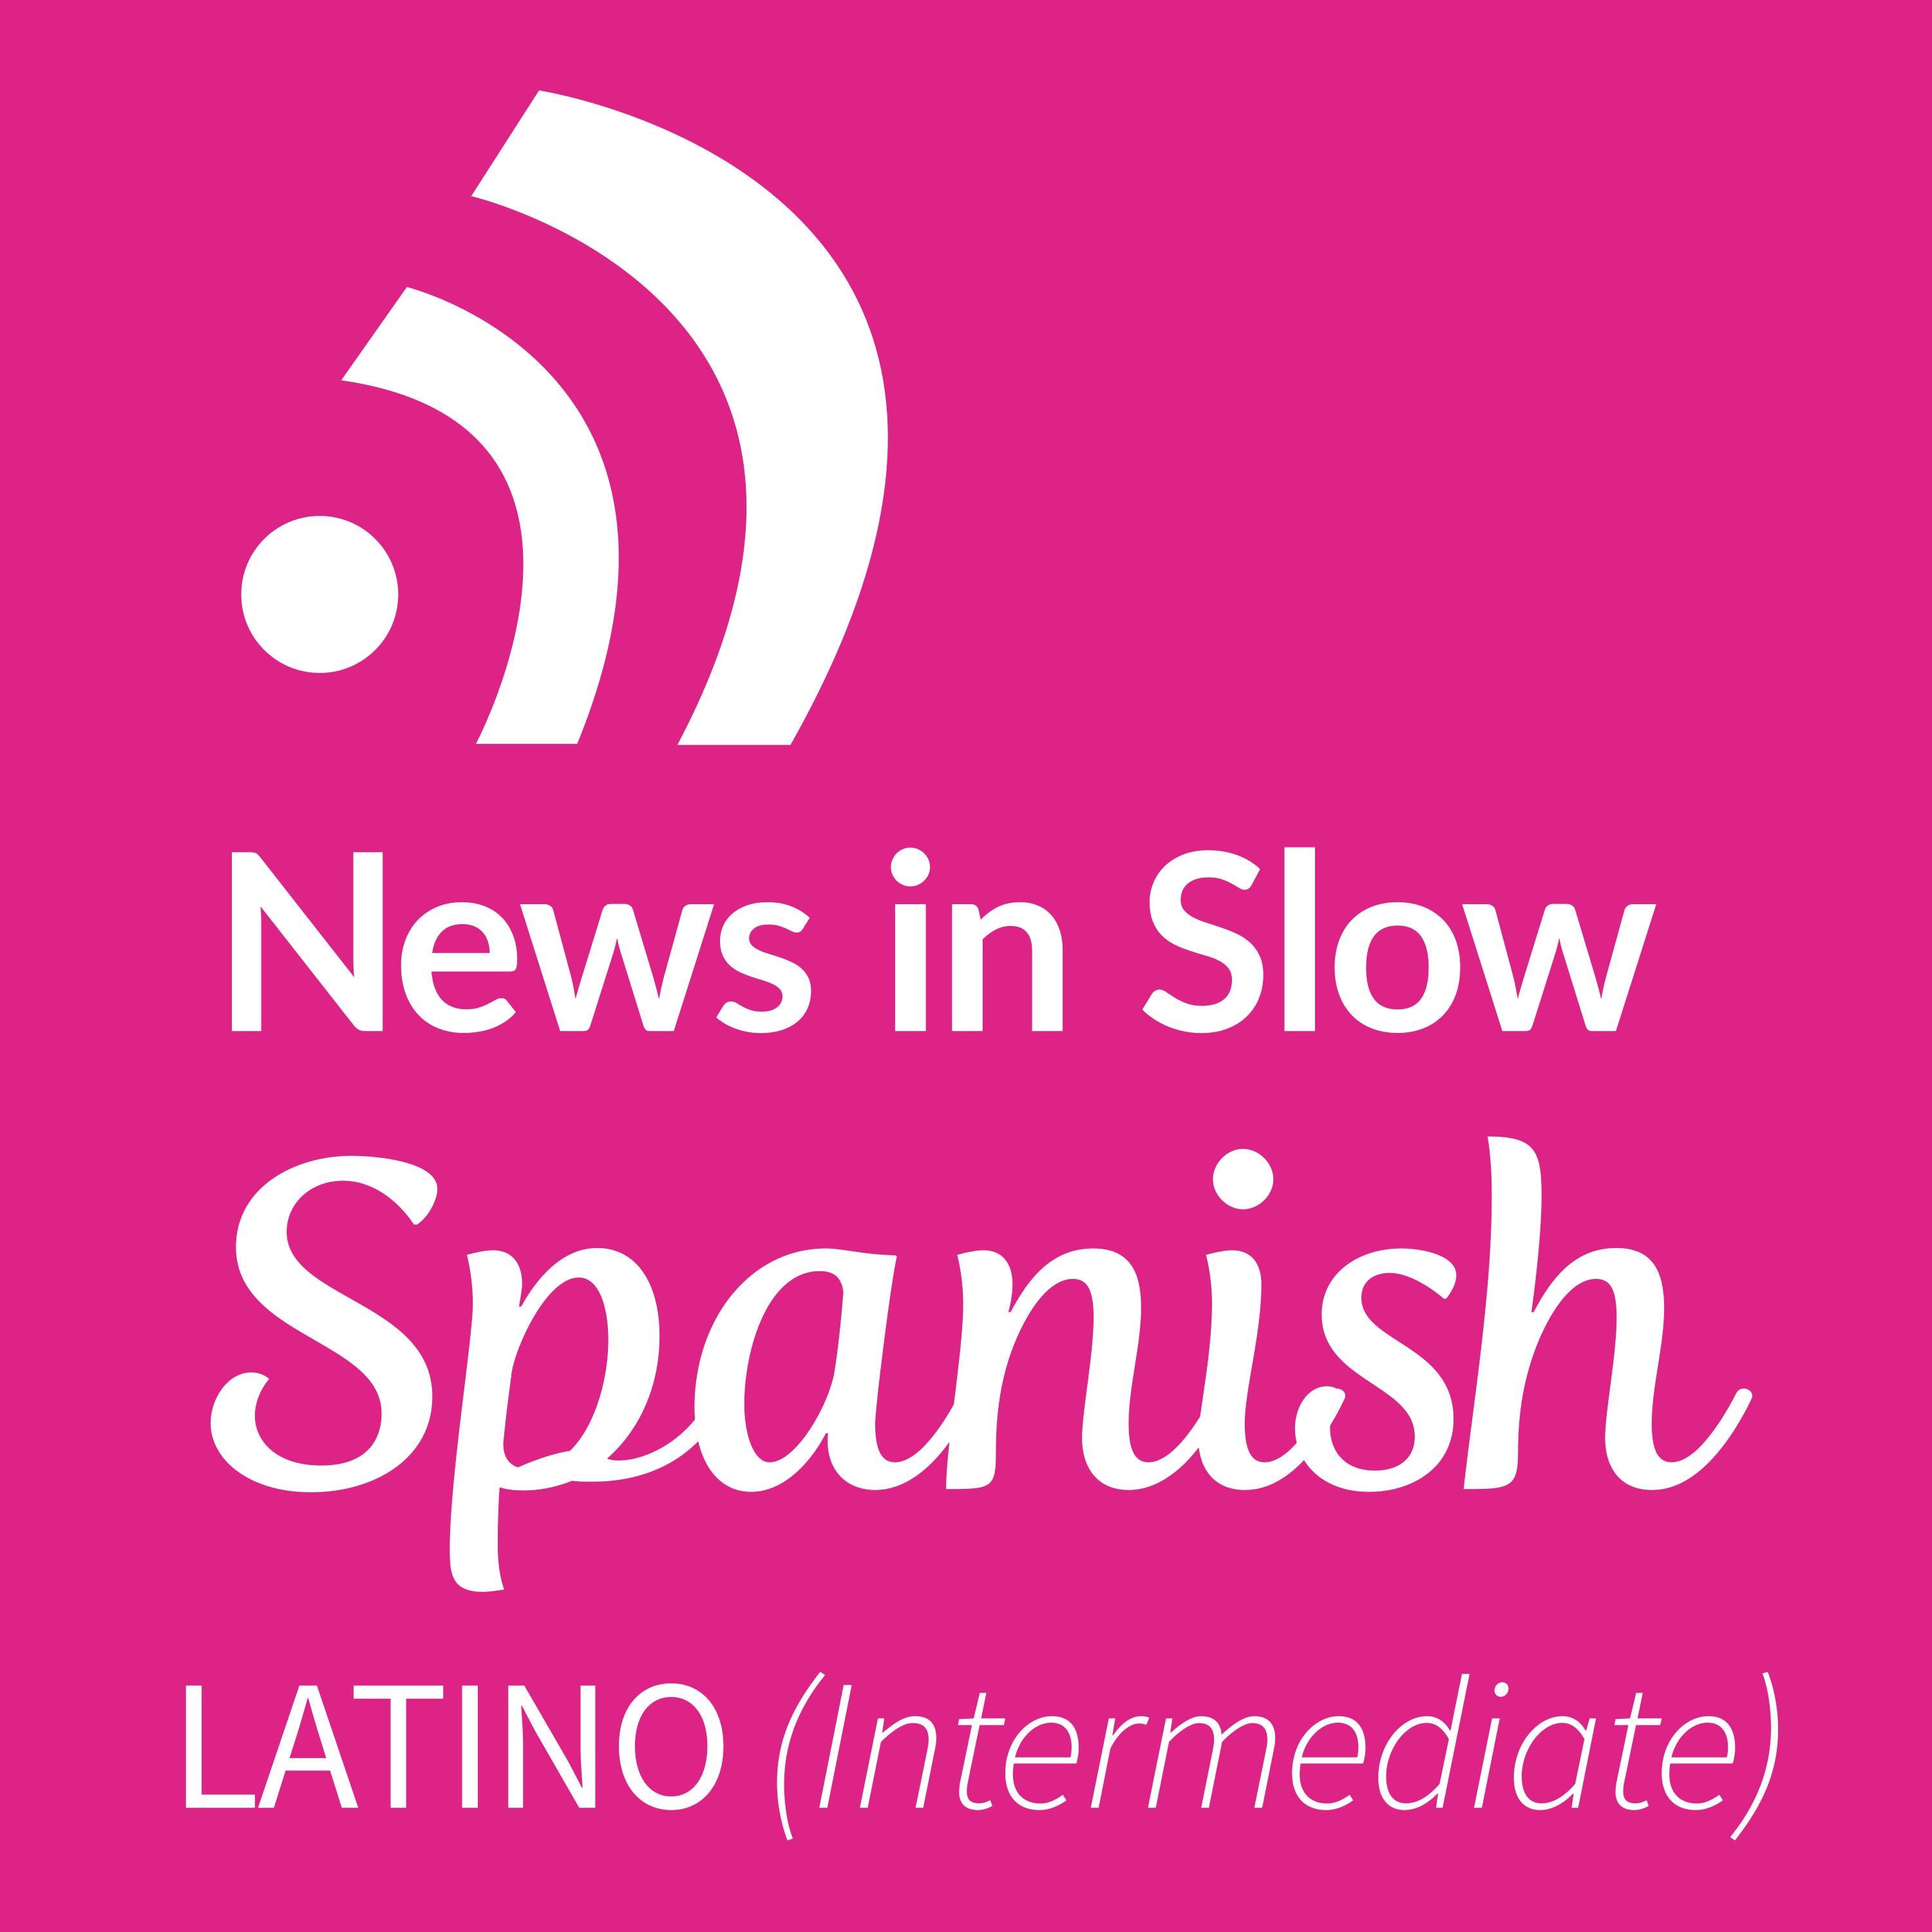 News in Slow Spanish Latino - # 137 - Spanish grammar, news and expressions